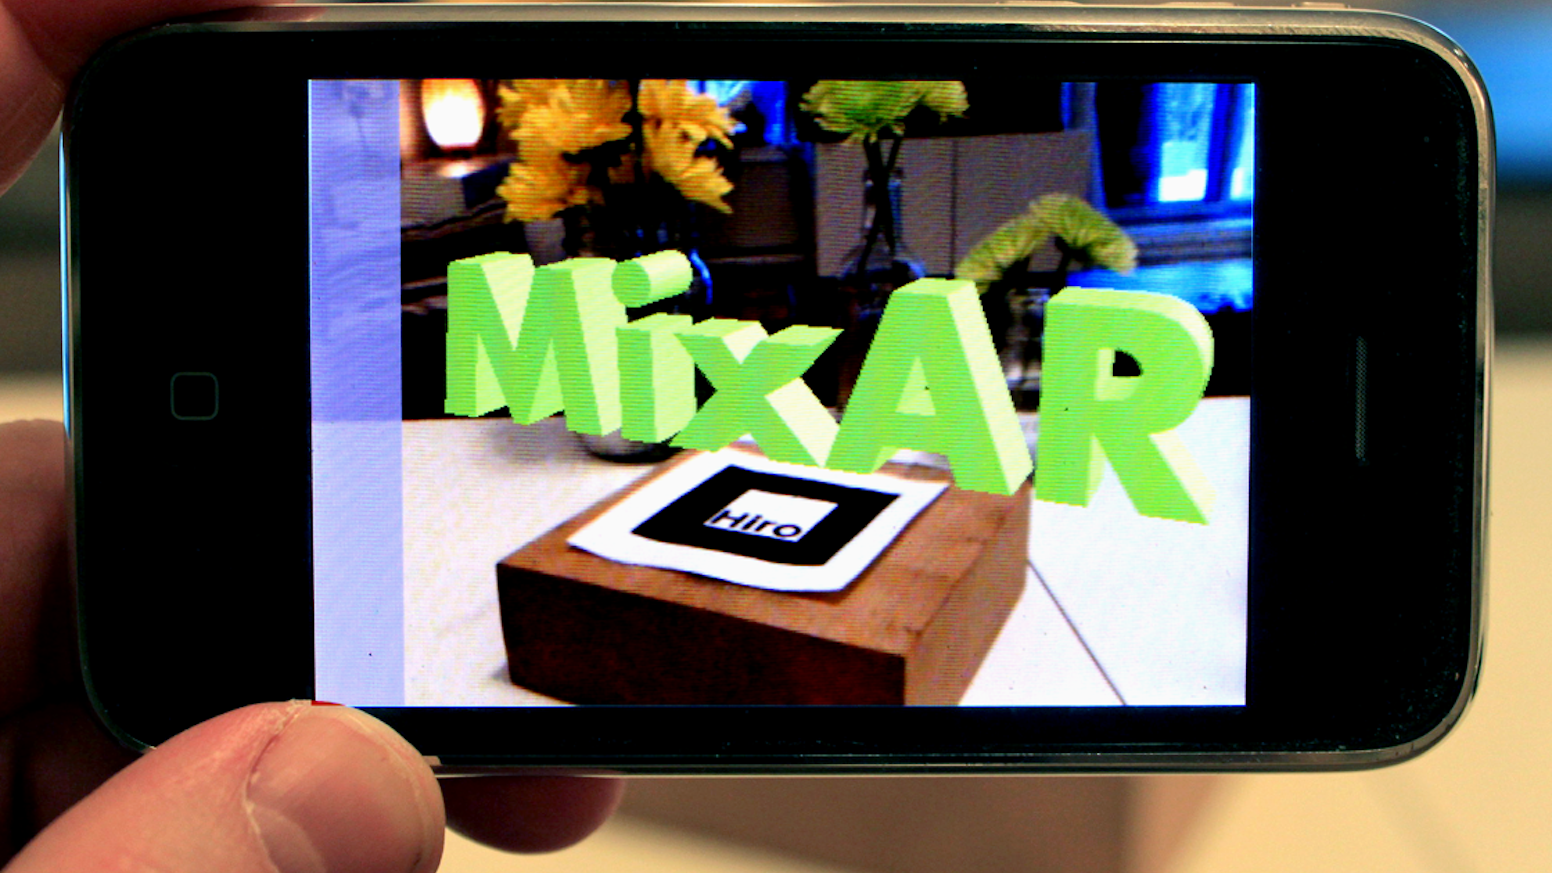 augmented reality 3d text